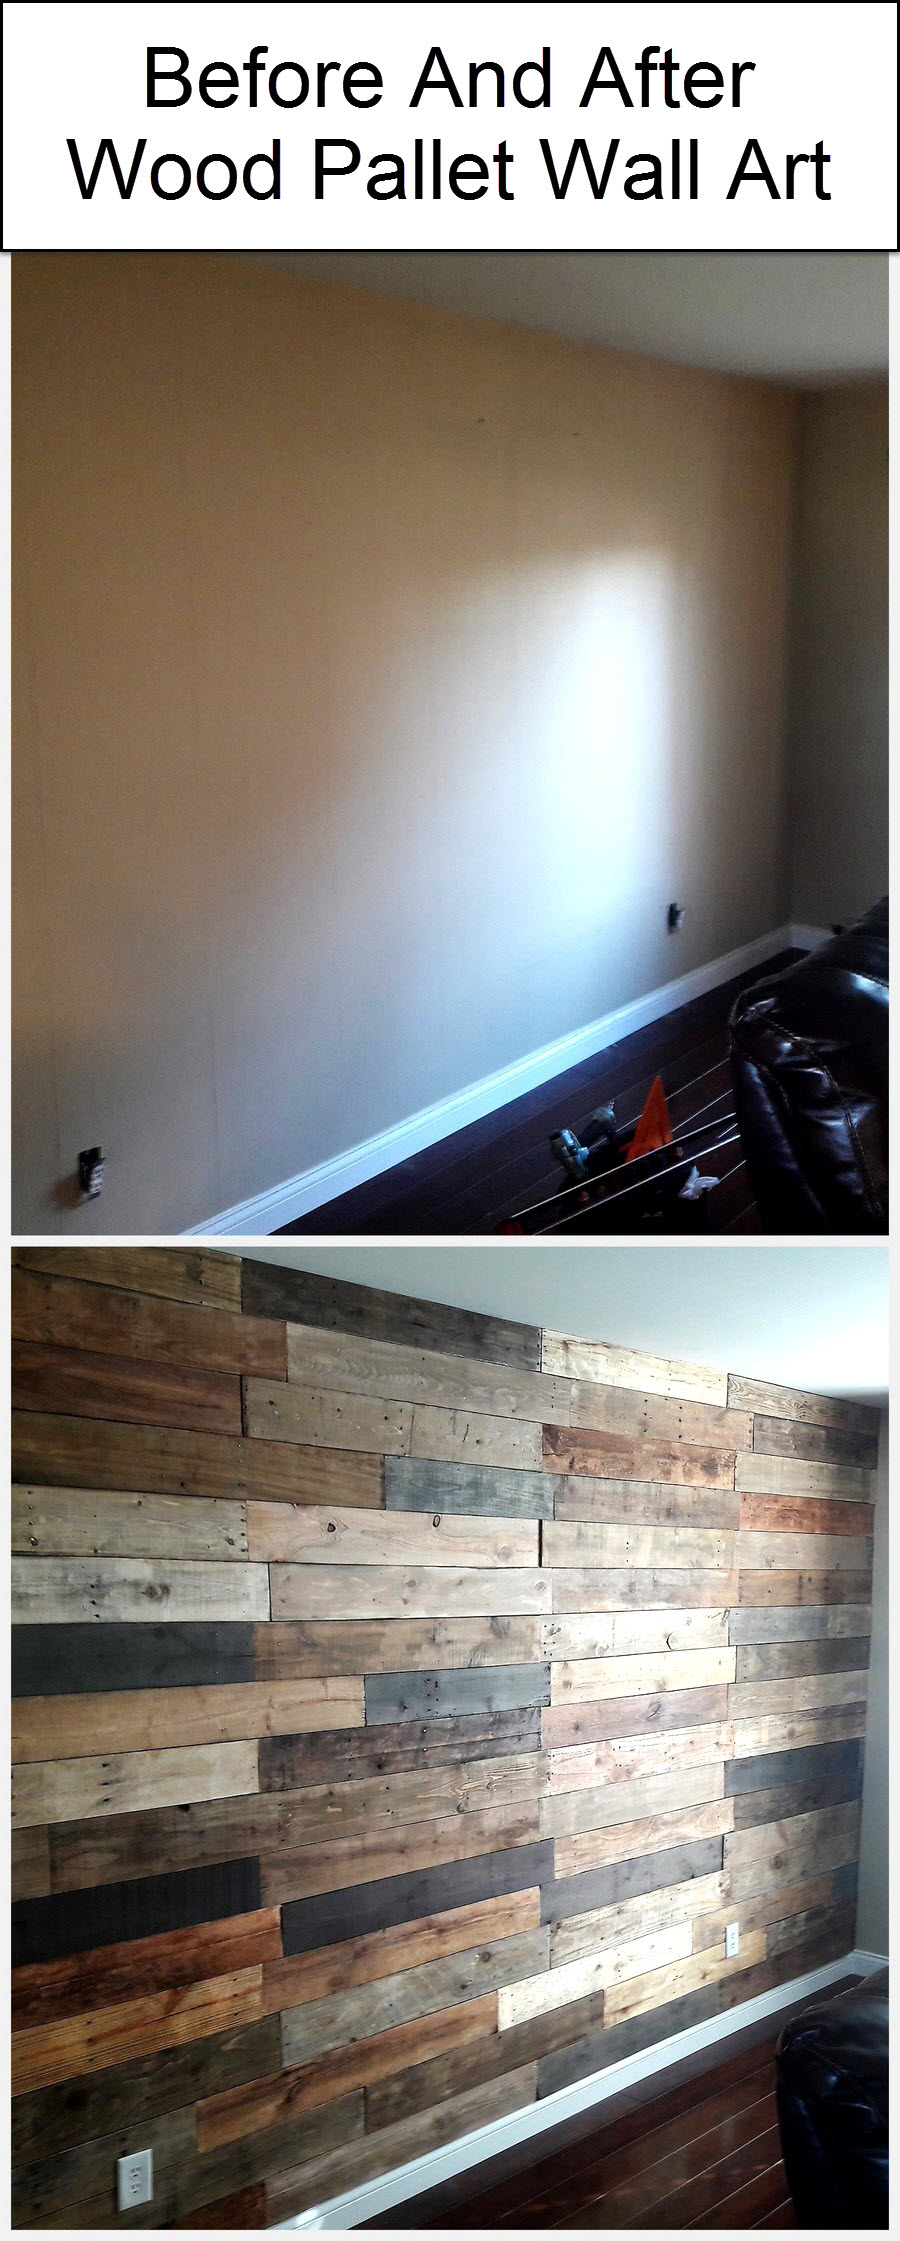 before-and-after-wood-pallet-wall-art